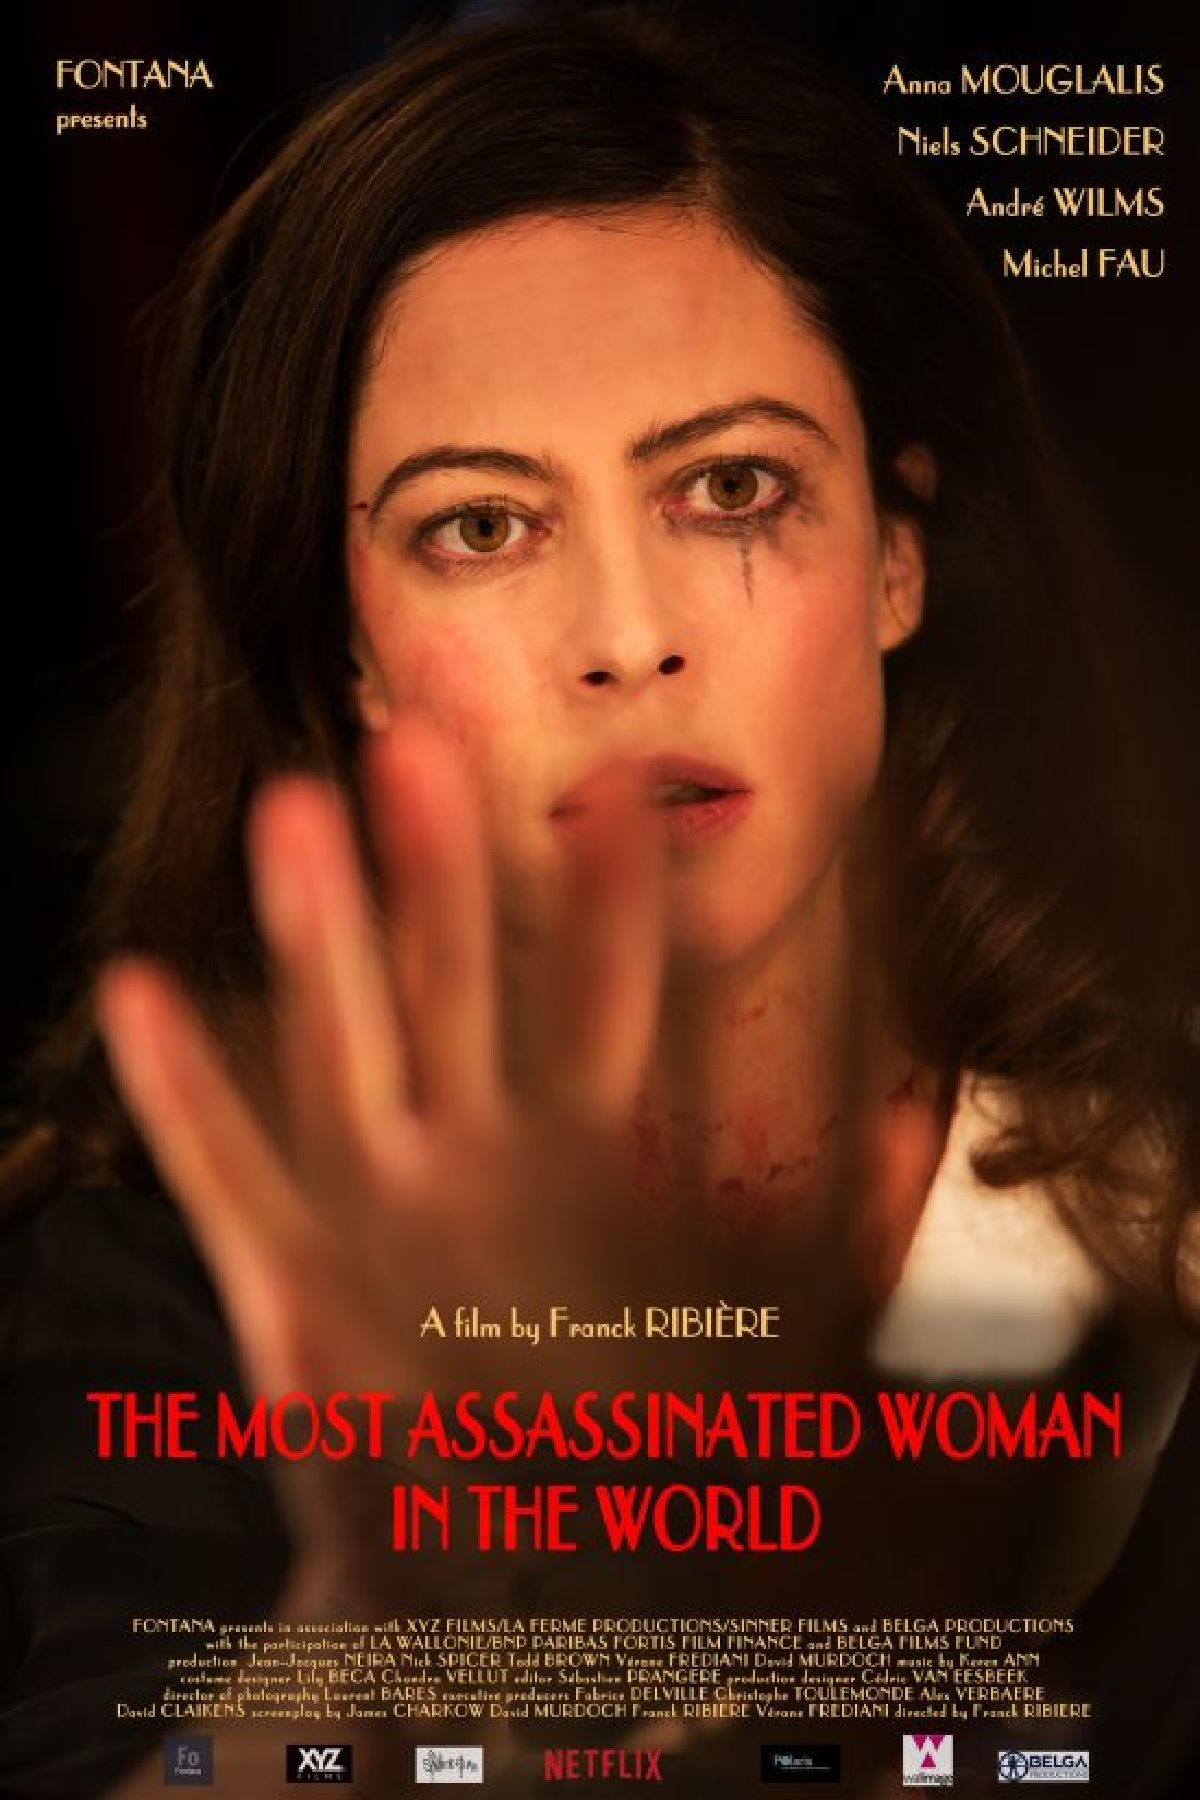 'The Most Assassinated Woman In The World' movie poster